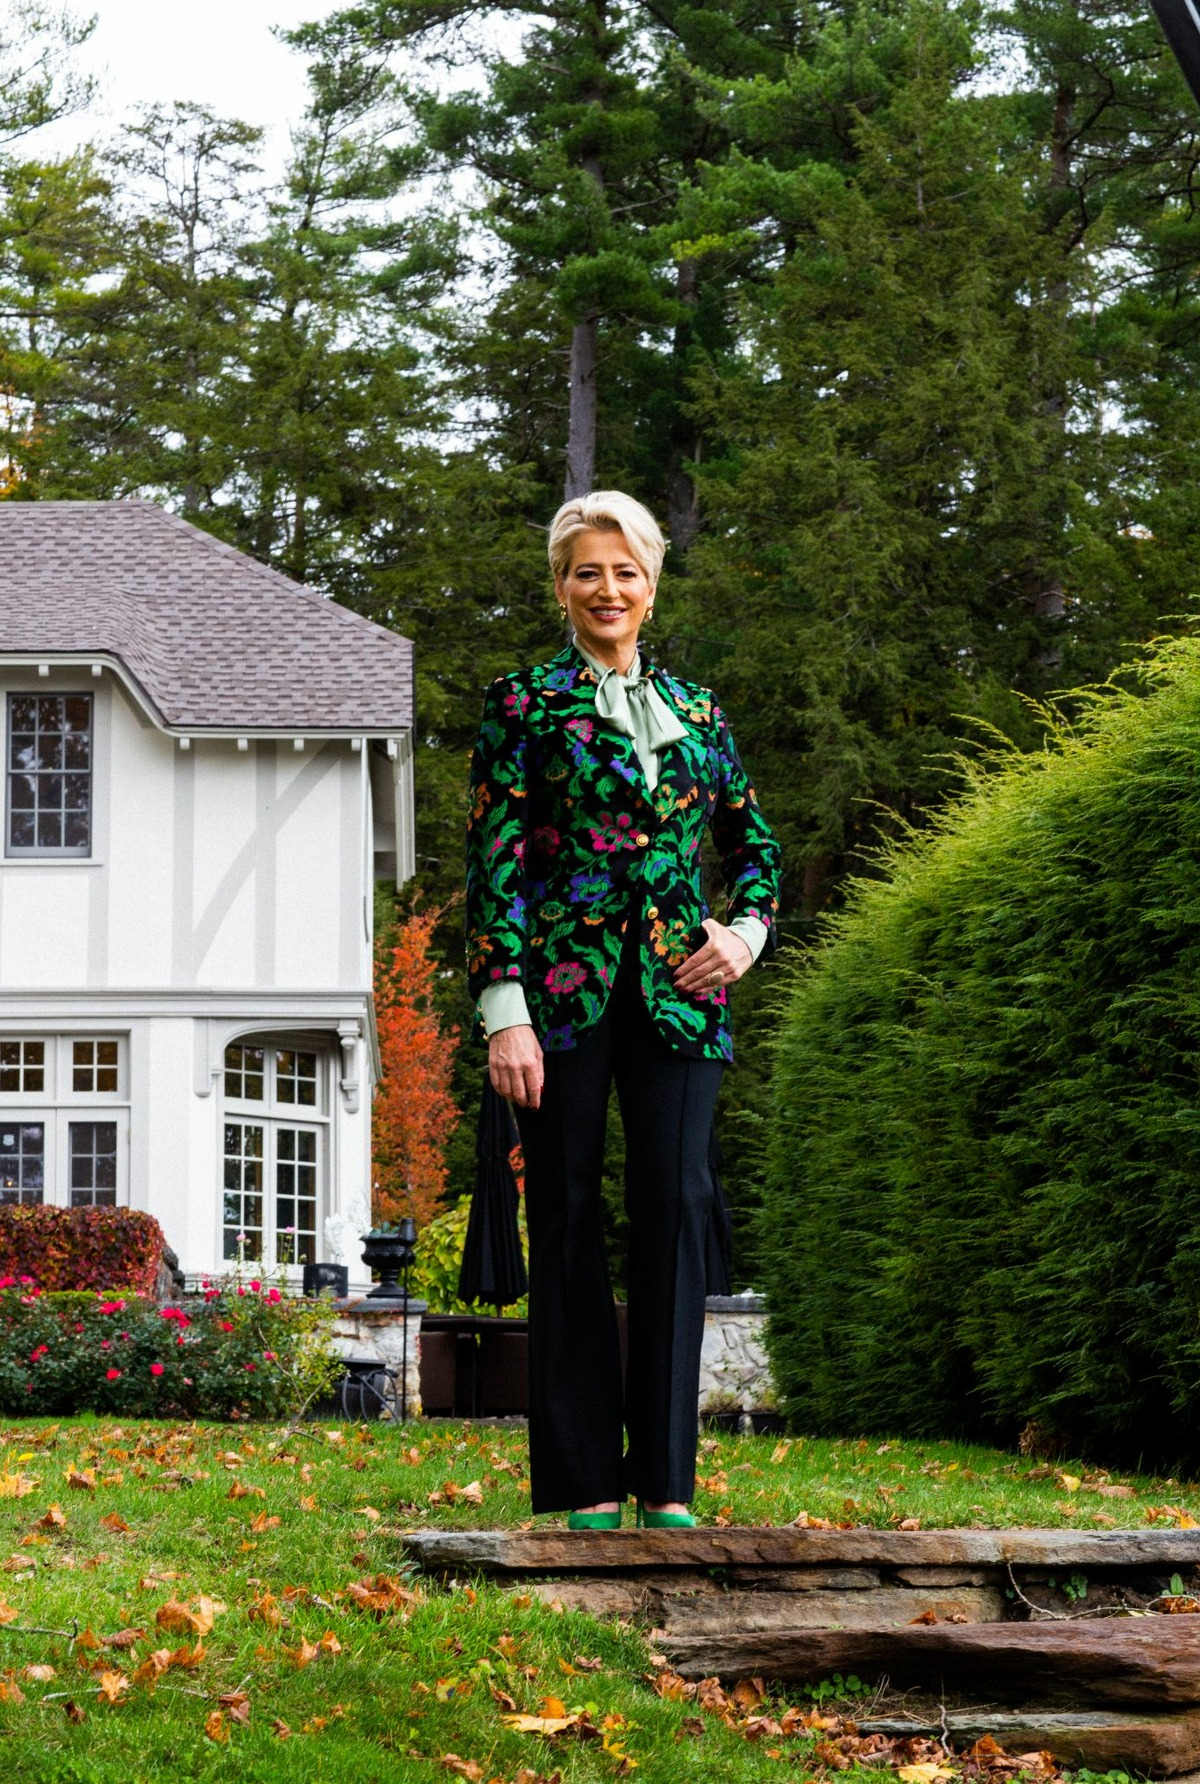 """""""Real Housewives of New York City"""" alum Dorinda Medley has listed her Great Barrington, Mass. Tudor home on Airbnb for two one-night-only stays in Aug. 2021."""